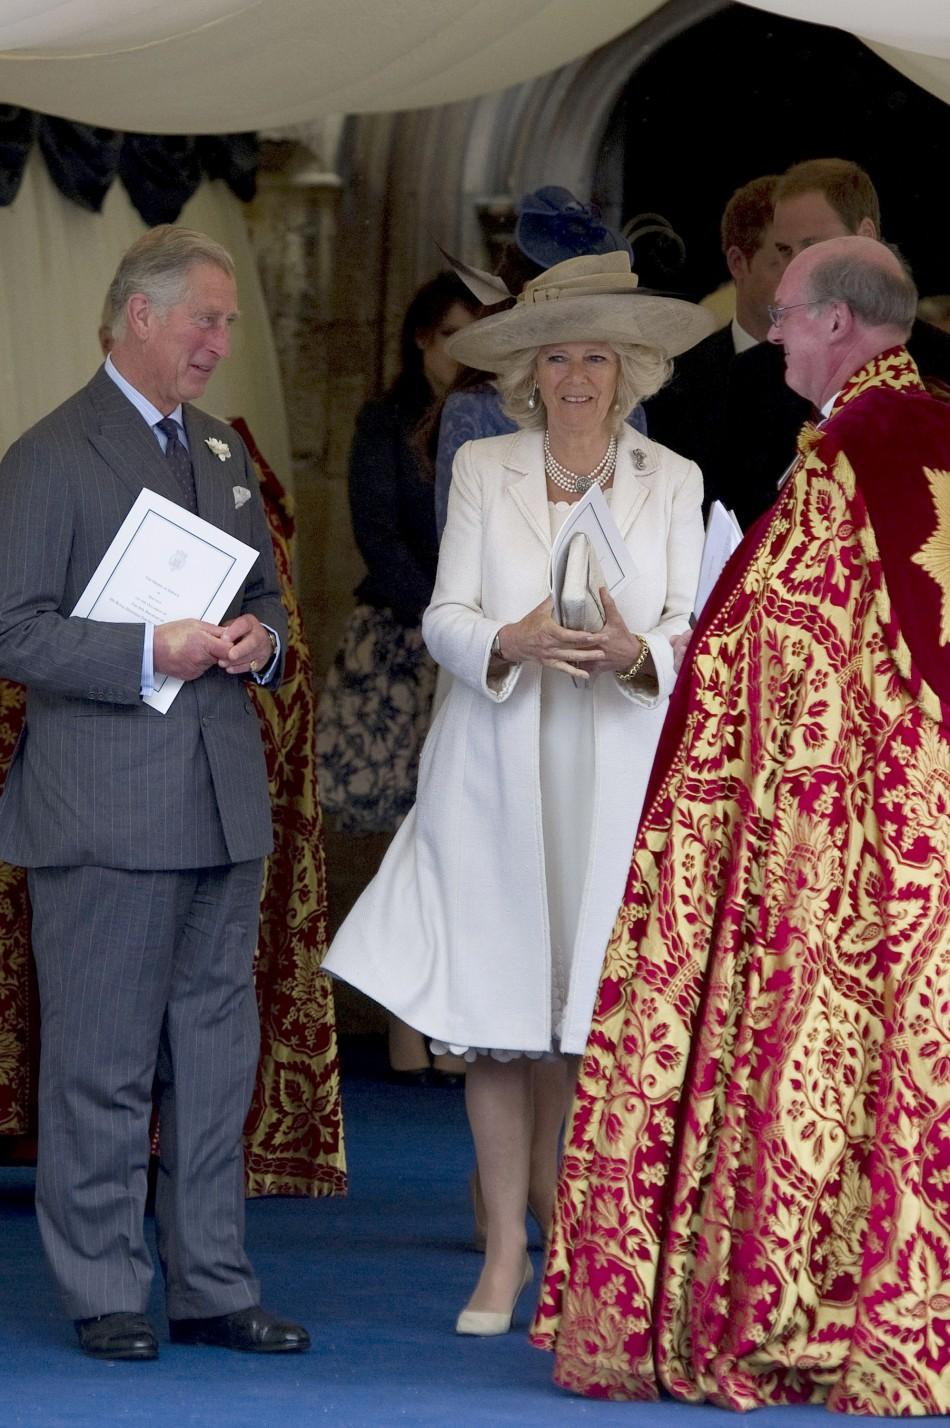 Kate Middleton attends Prince Philip's 90th birthday in recycled coat.